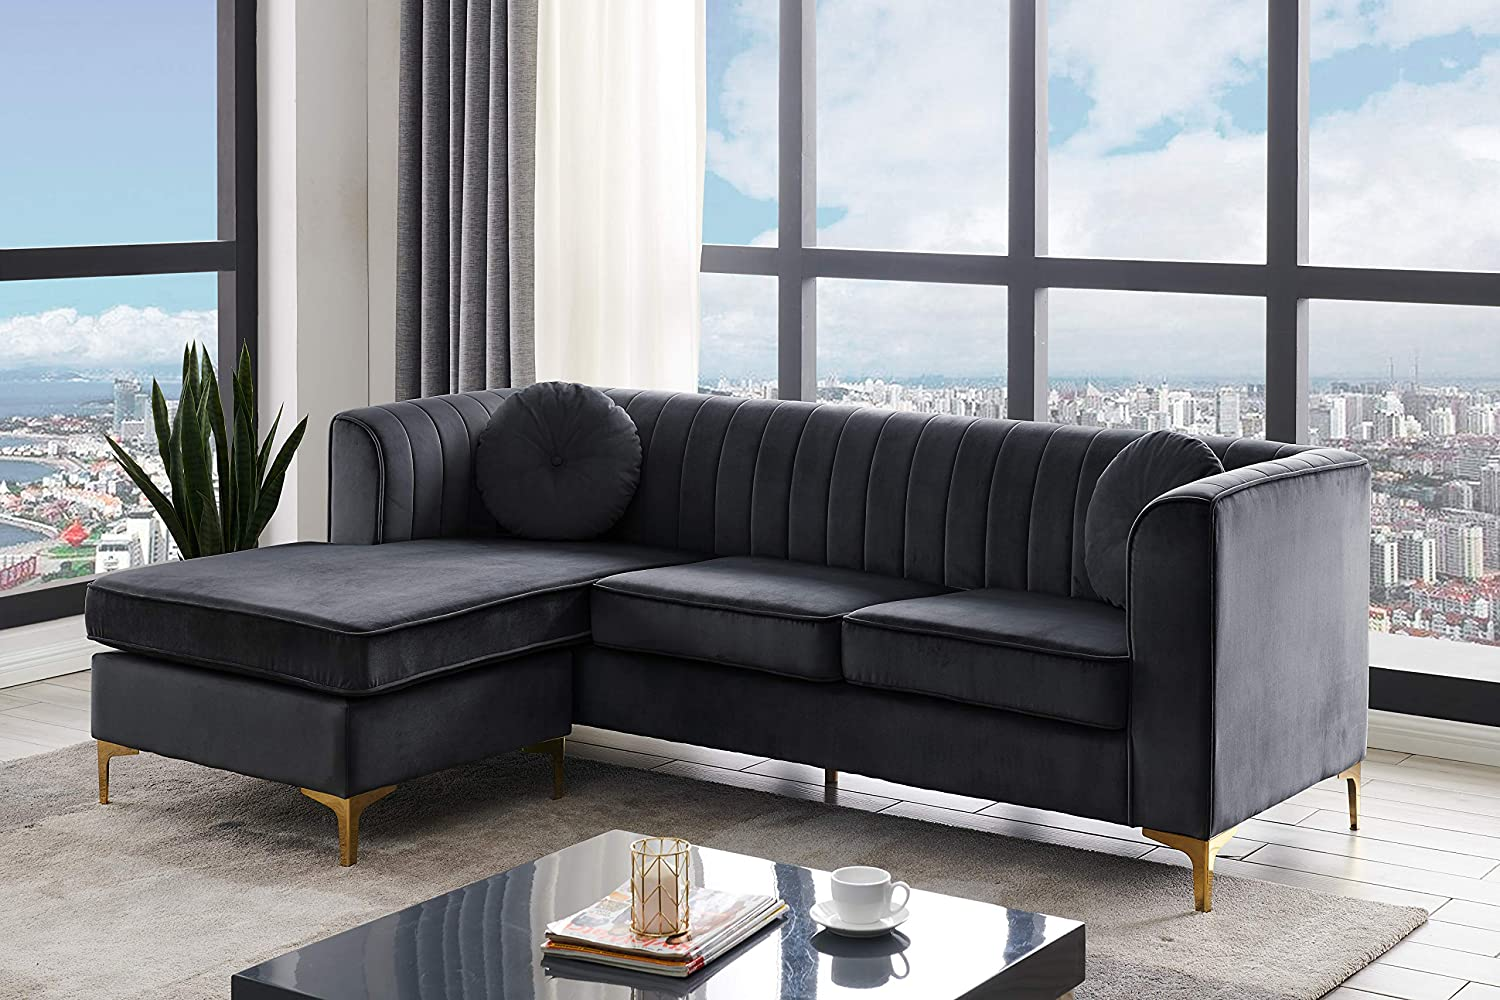 Amazon Com Iconic Home Brasilia Modular Chaise Sectional Sofa Velvet Upholstered Vertical Channel Quilted Seat Back Solid Gold Tone Metal Y Legs With 2 Throw Pillows Modern Contemporary Taupe Black Furniture Decor